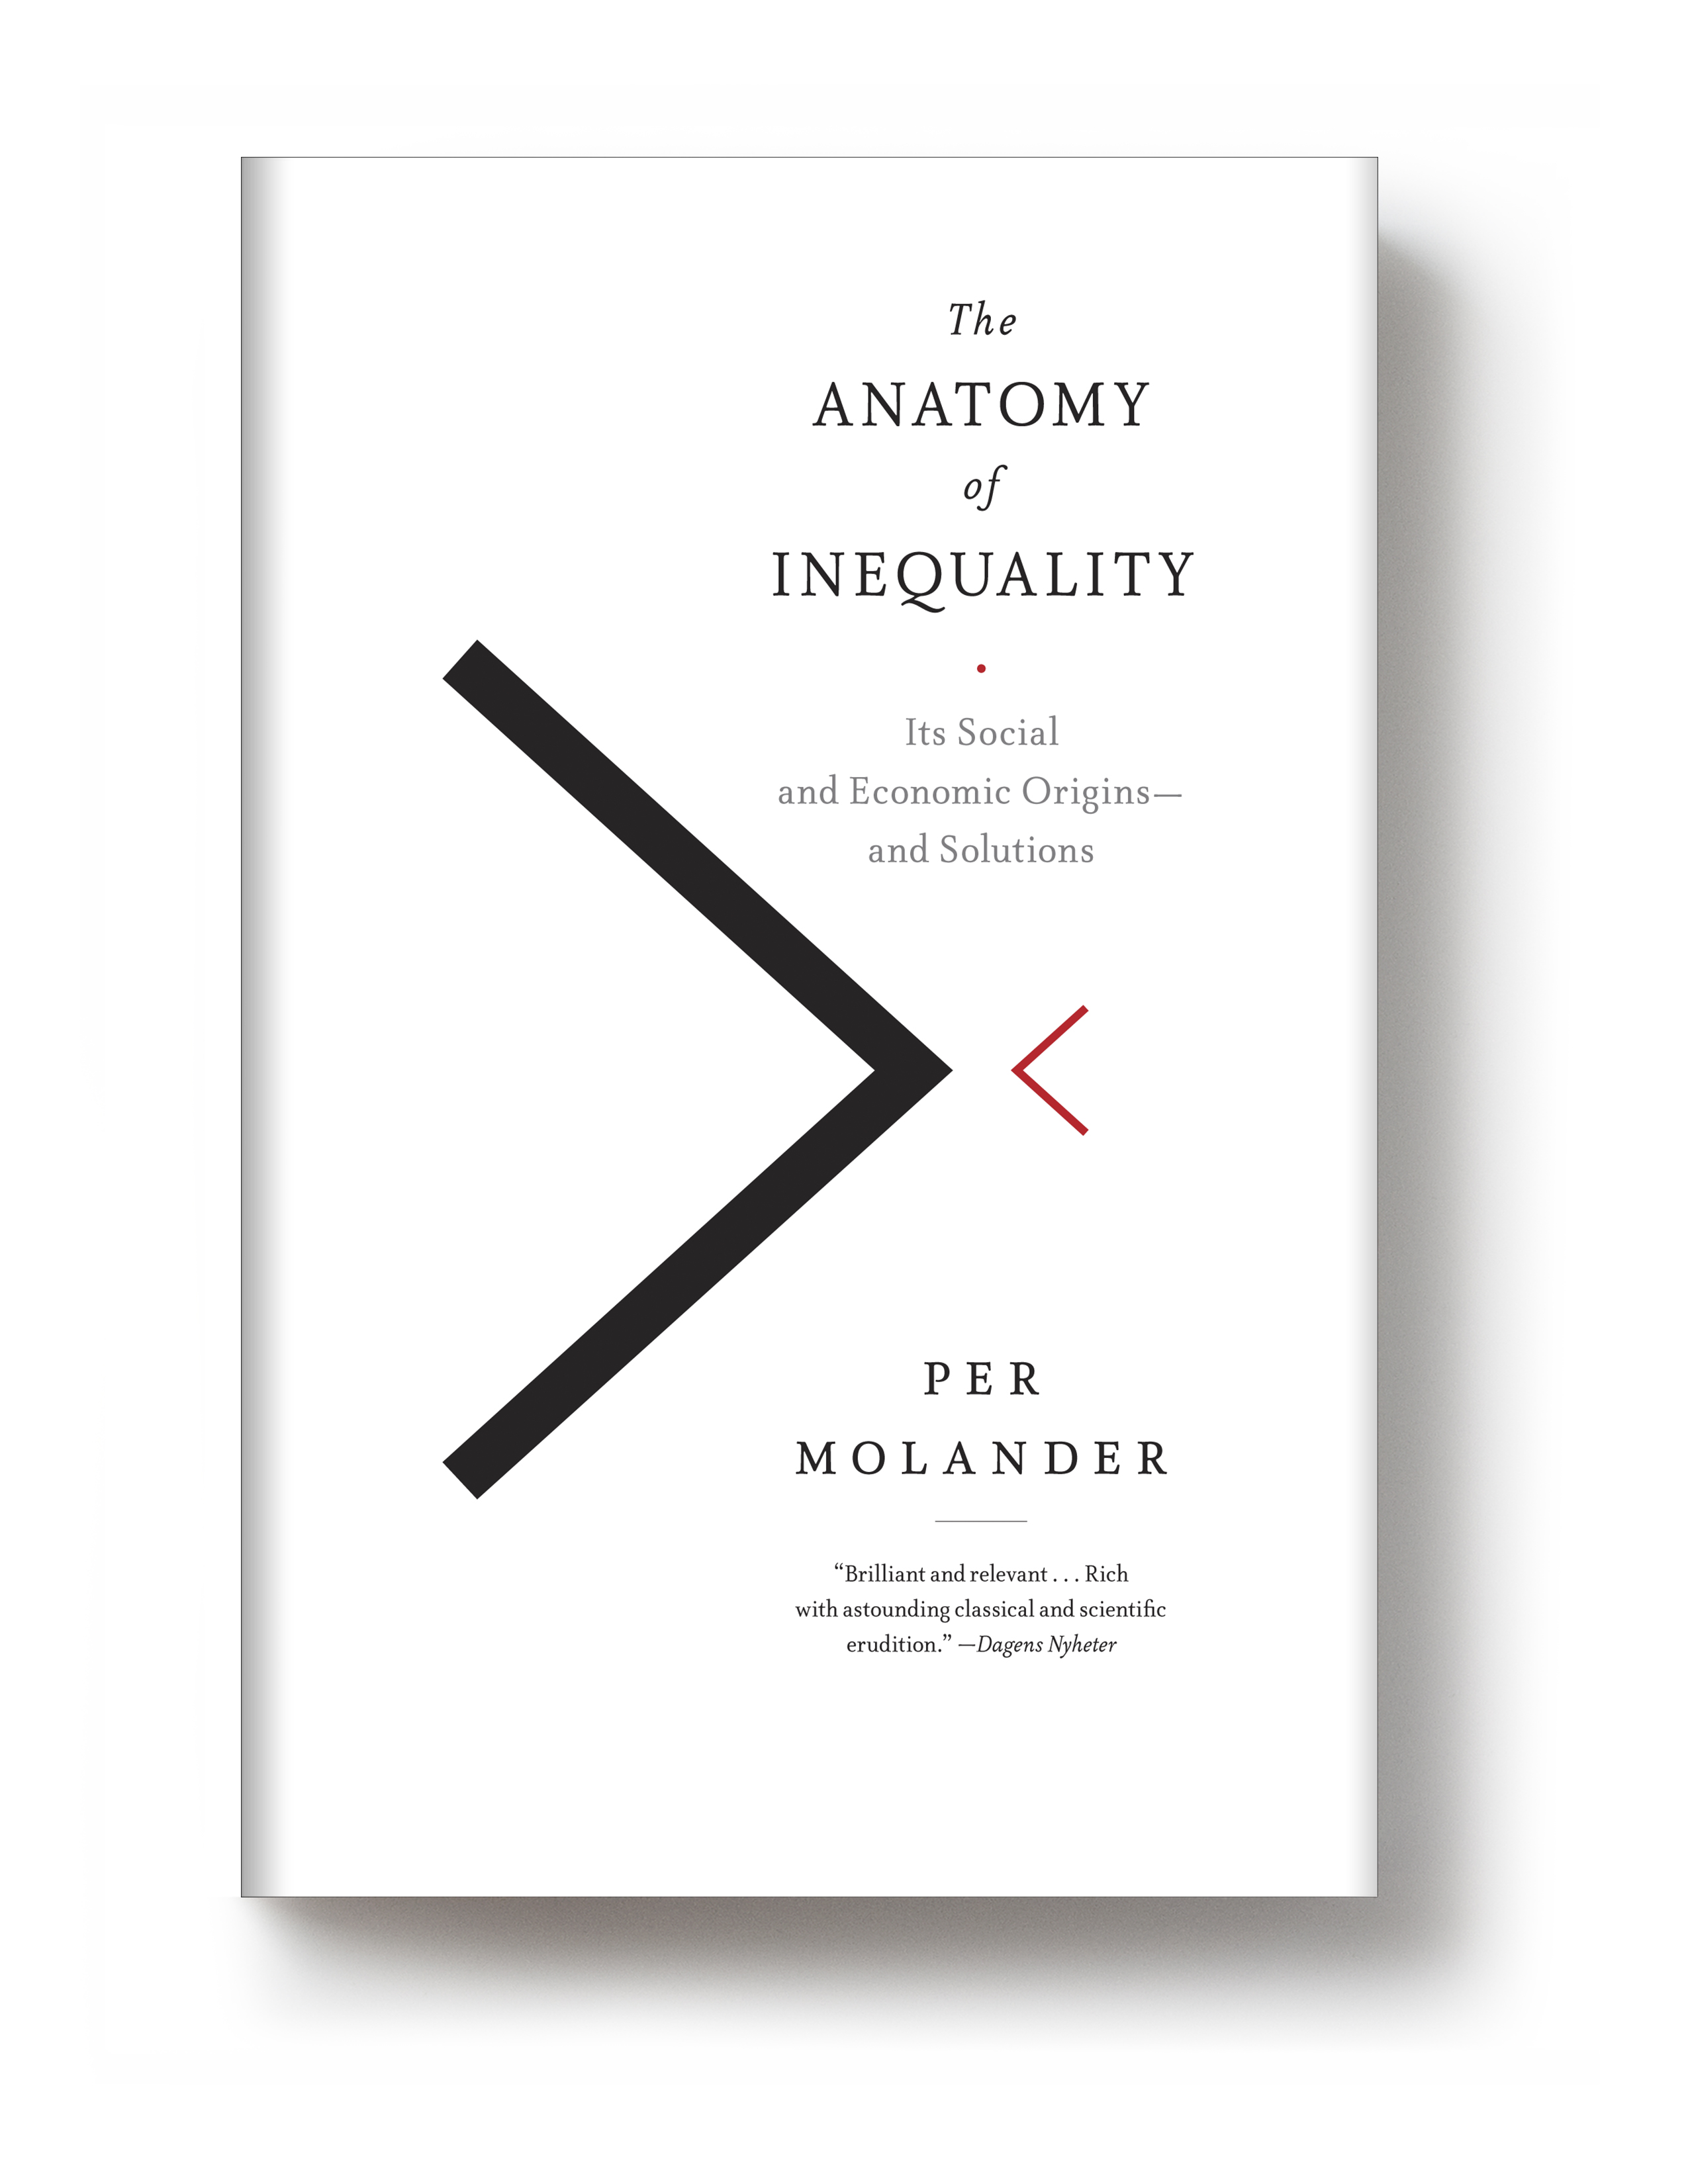 On sale today: <i>The Anatomy of Inequality</i> by Per Molander